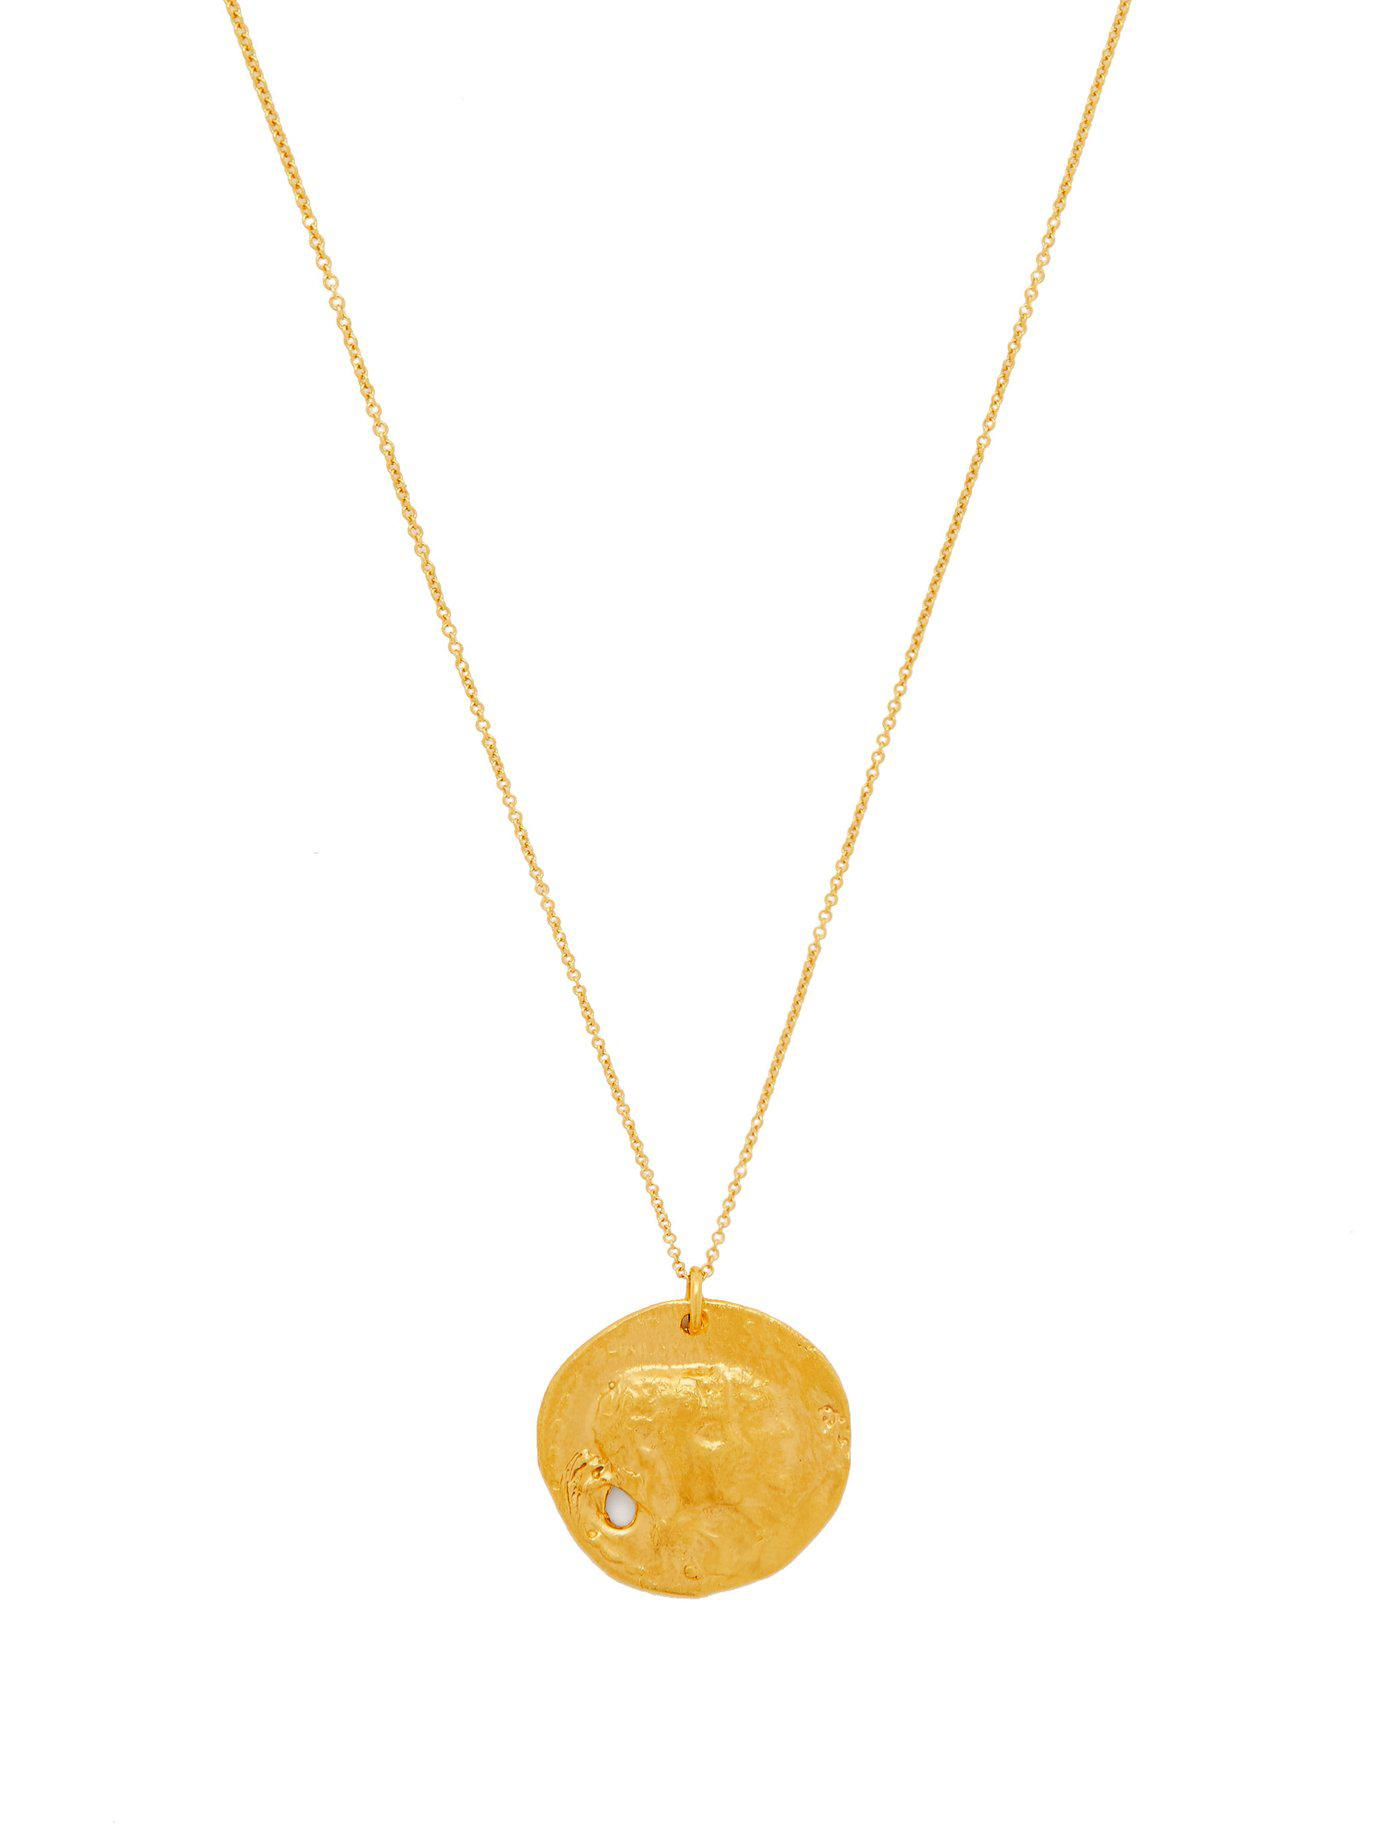 b50fecfcc53ec Lyst - Alighieri The Other Side Of The World Gold Plated Necklace in ...